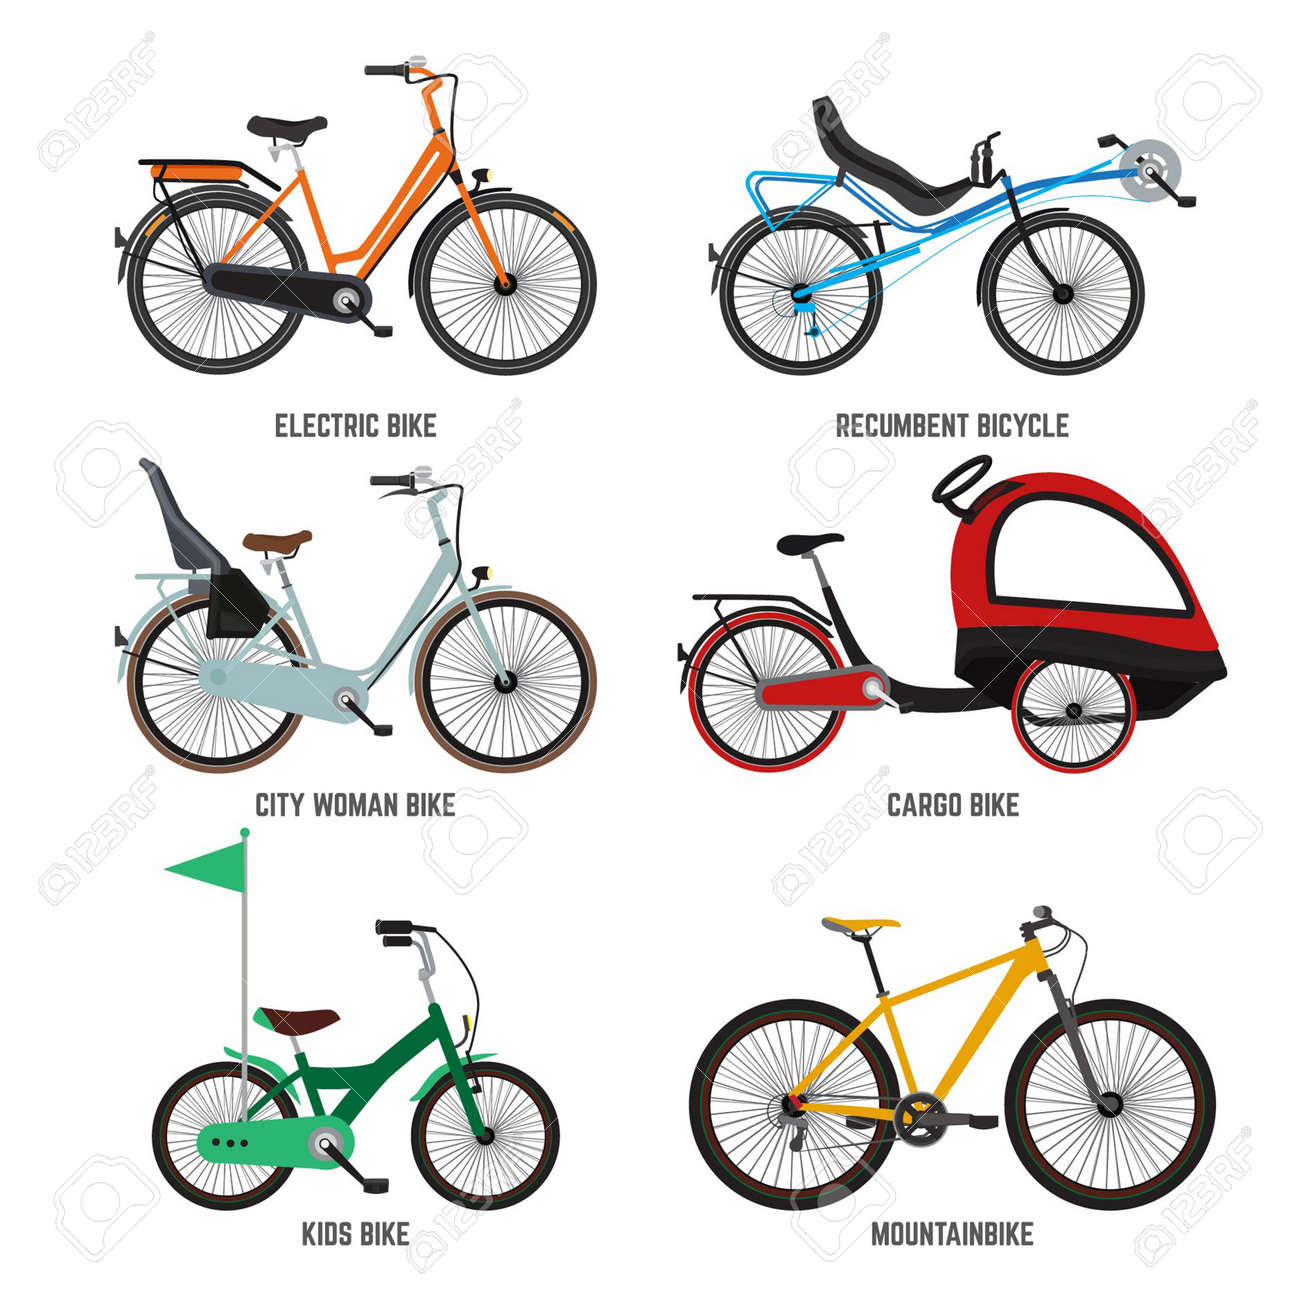 Different type of bicycles for male female and kids. Bikes for family. Vector illustrations kids bike and mountain bike isolate on white - 166034288